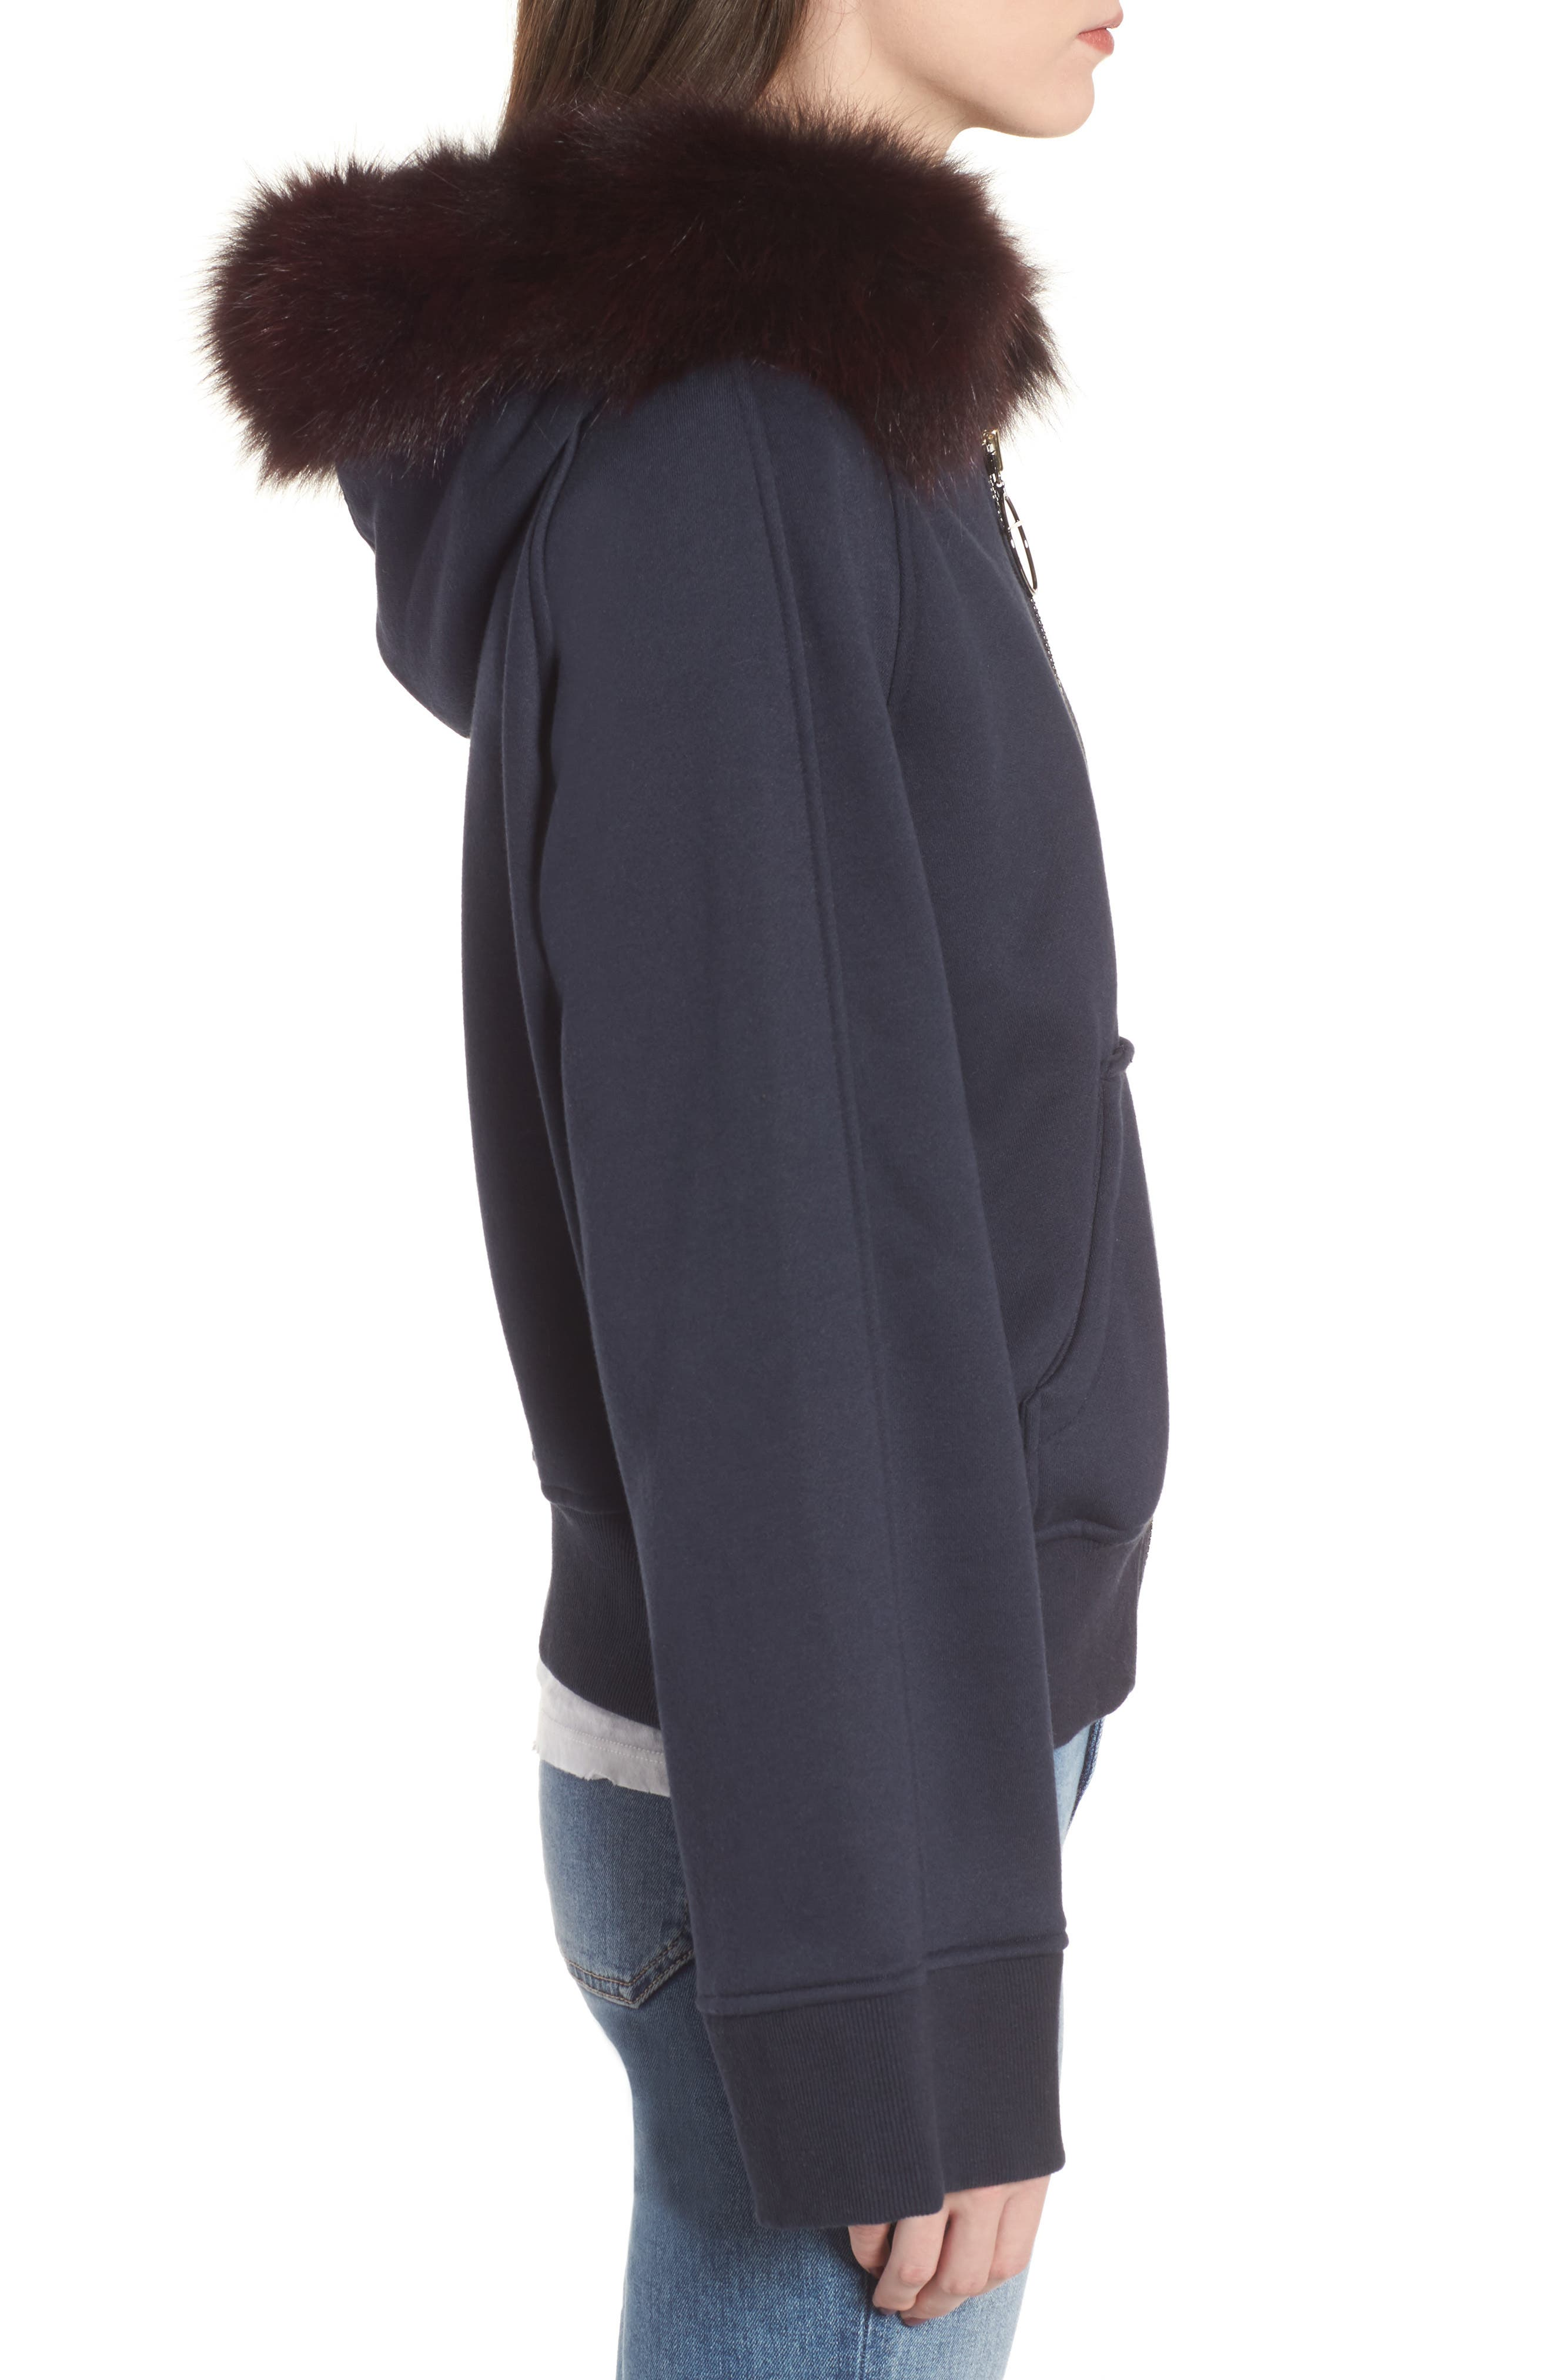 BAGATELLE.CITY The Luxe Hooded Jacket with Genuine Fox Fur Trim,                             Alternate thumbnail 8, color,